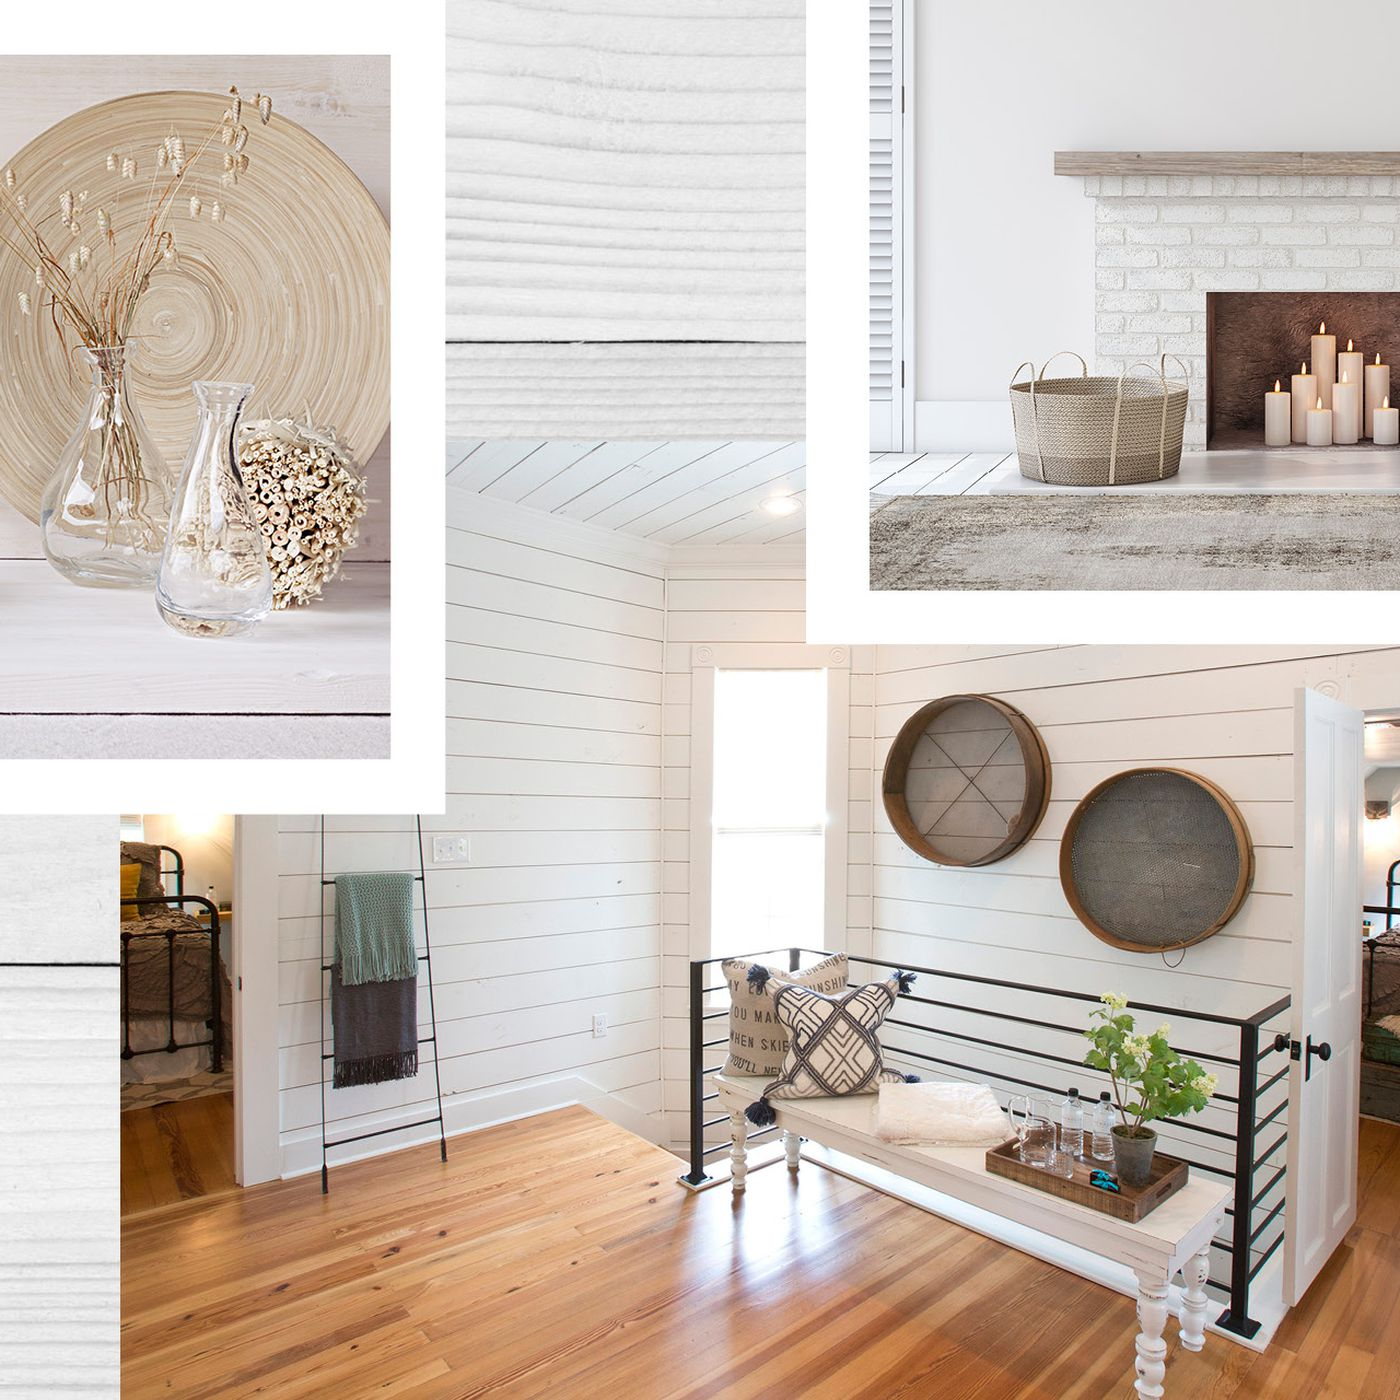 What is modern farmhouse style? - Curbed